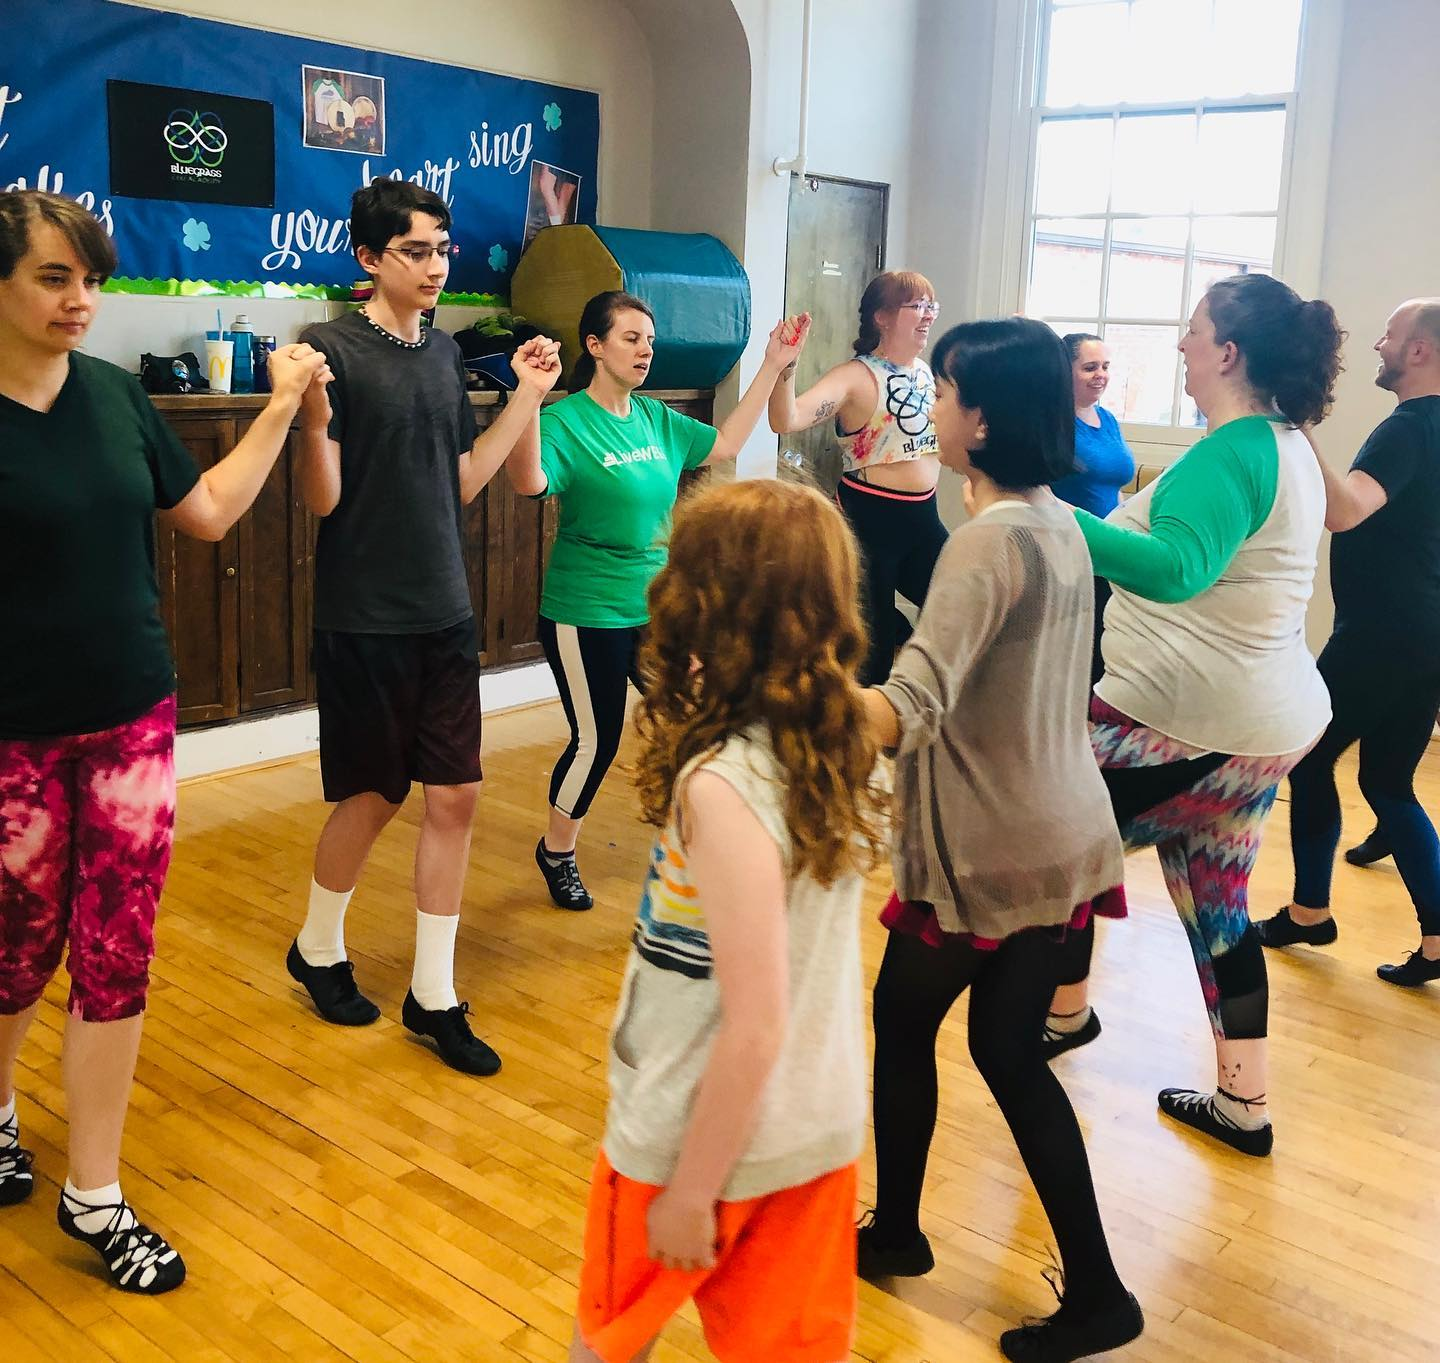 Sign up for affordable Irish dance classes in Lexington